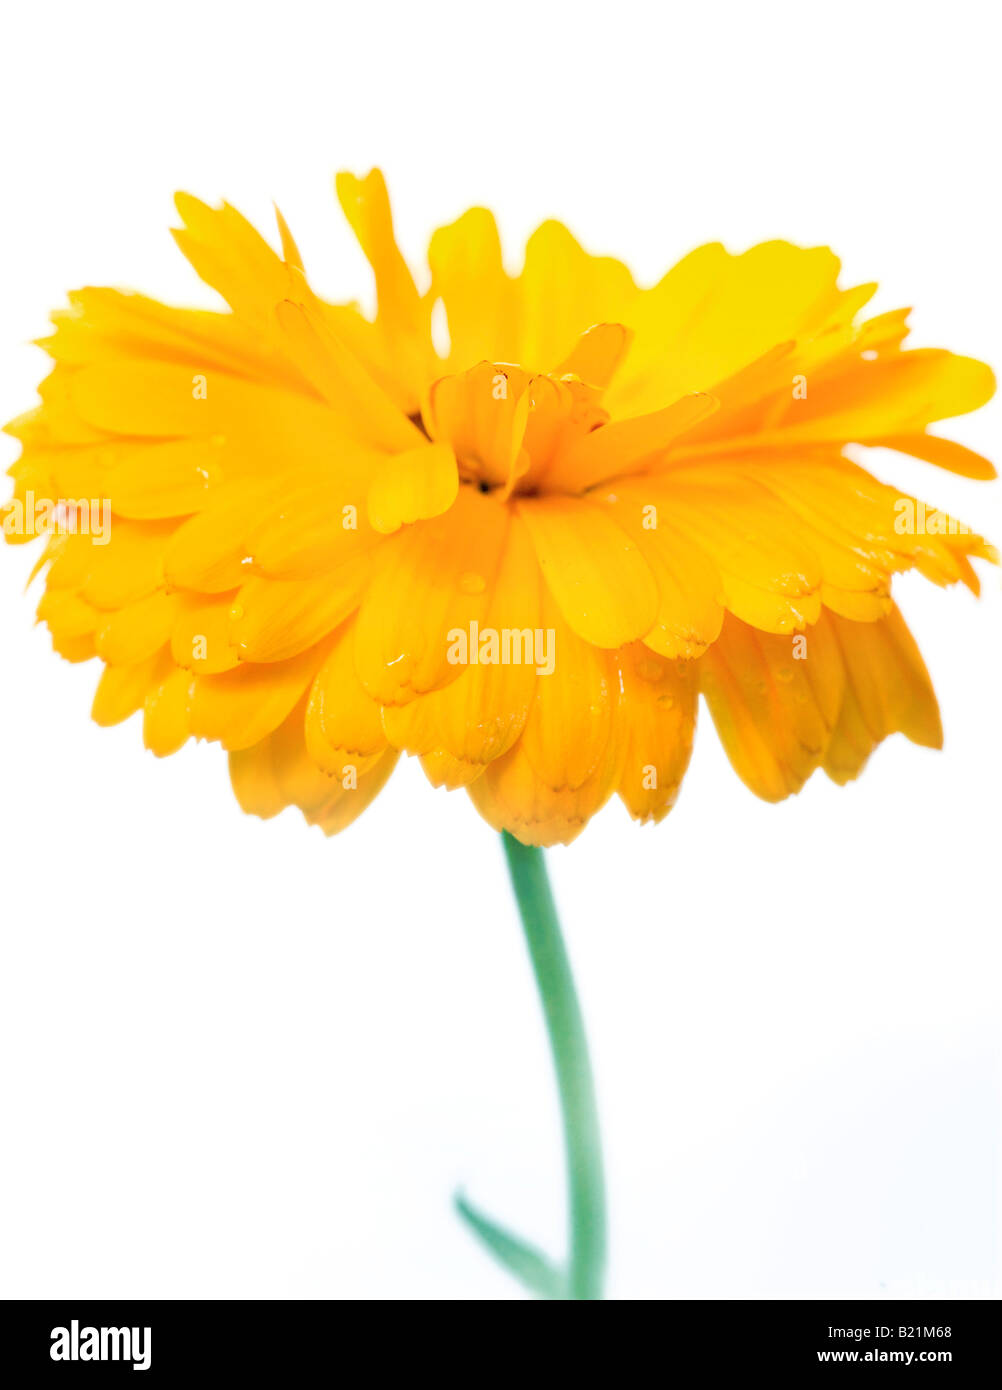 Studio shot of a yellow Marigold against a white background. Latin name 'Calendula officinalis' - Stock Image